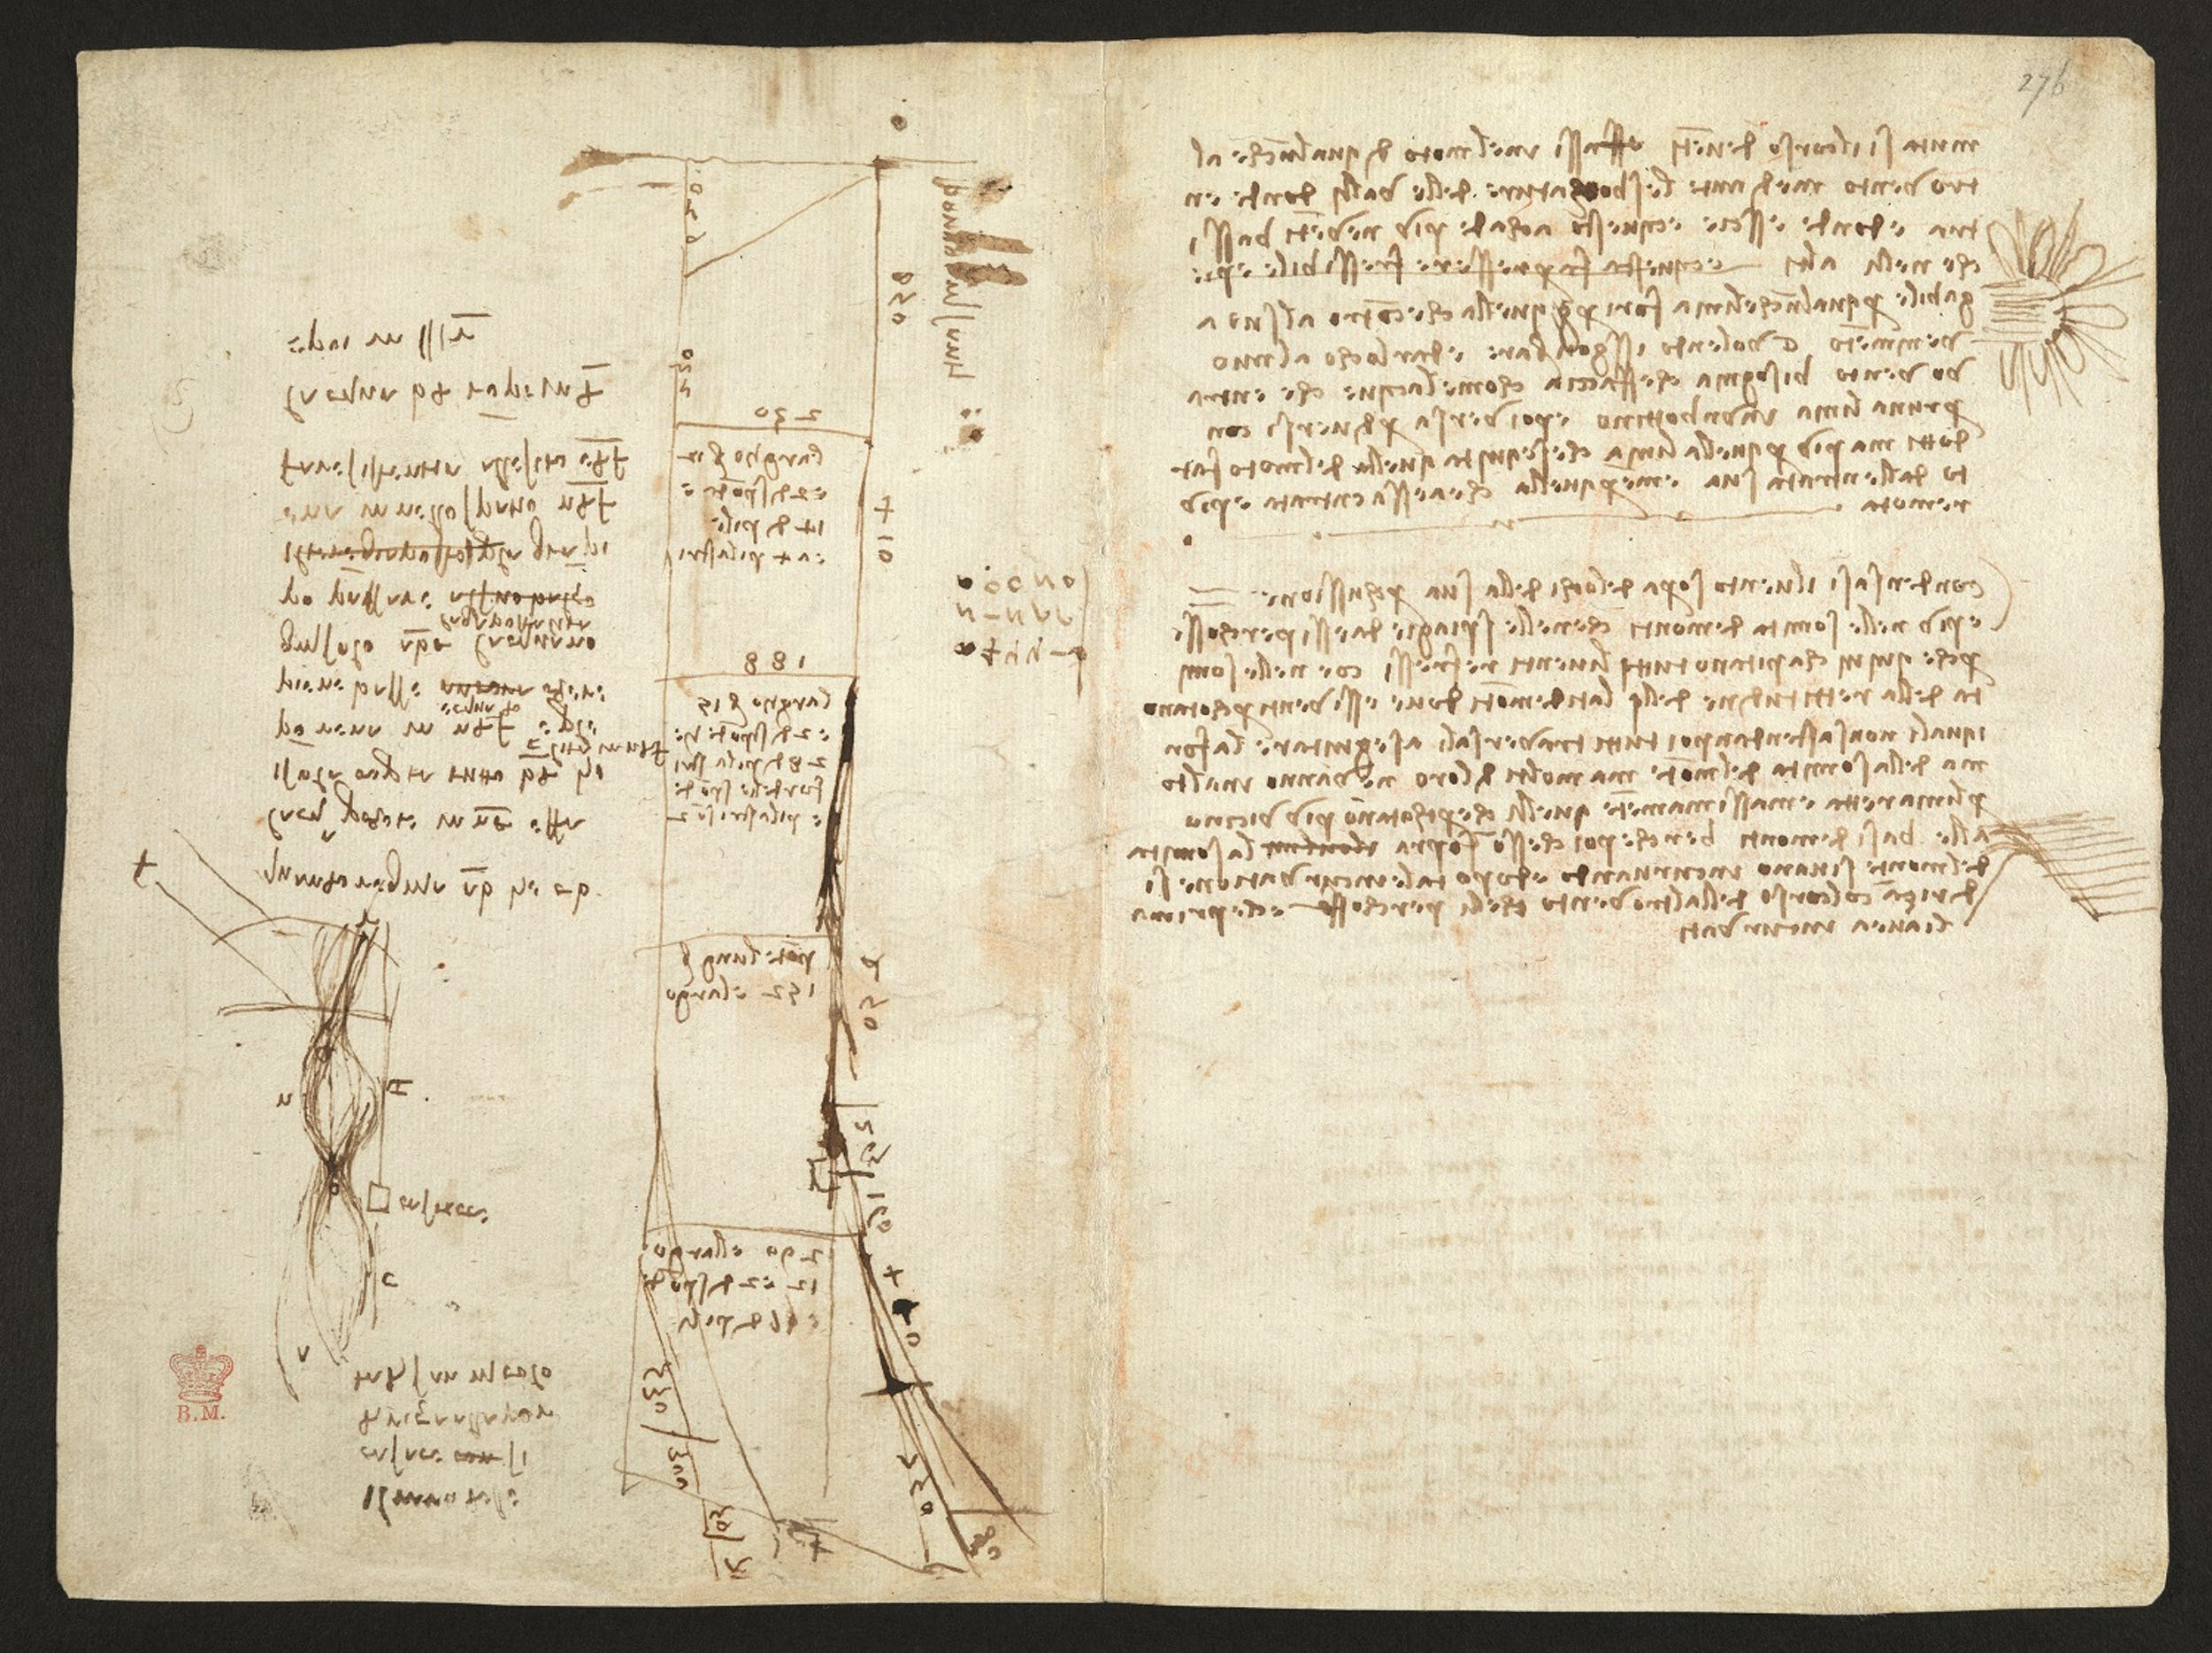 Leonardo da Vinci Studi per la canalizzazione dell'Arno e sui moti del vento 1504 circa penna e inchiostro con tocchi di matita rossa Codice Arundel, ff. 273v-276r British Library, Londra I Leonardo da Vinci Studies for channelling the Arno and on wind 1504 circa pen and ink, with touches of red pencil Codex Arundel, ff. 273v-276r British Library, London